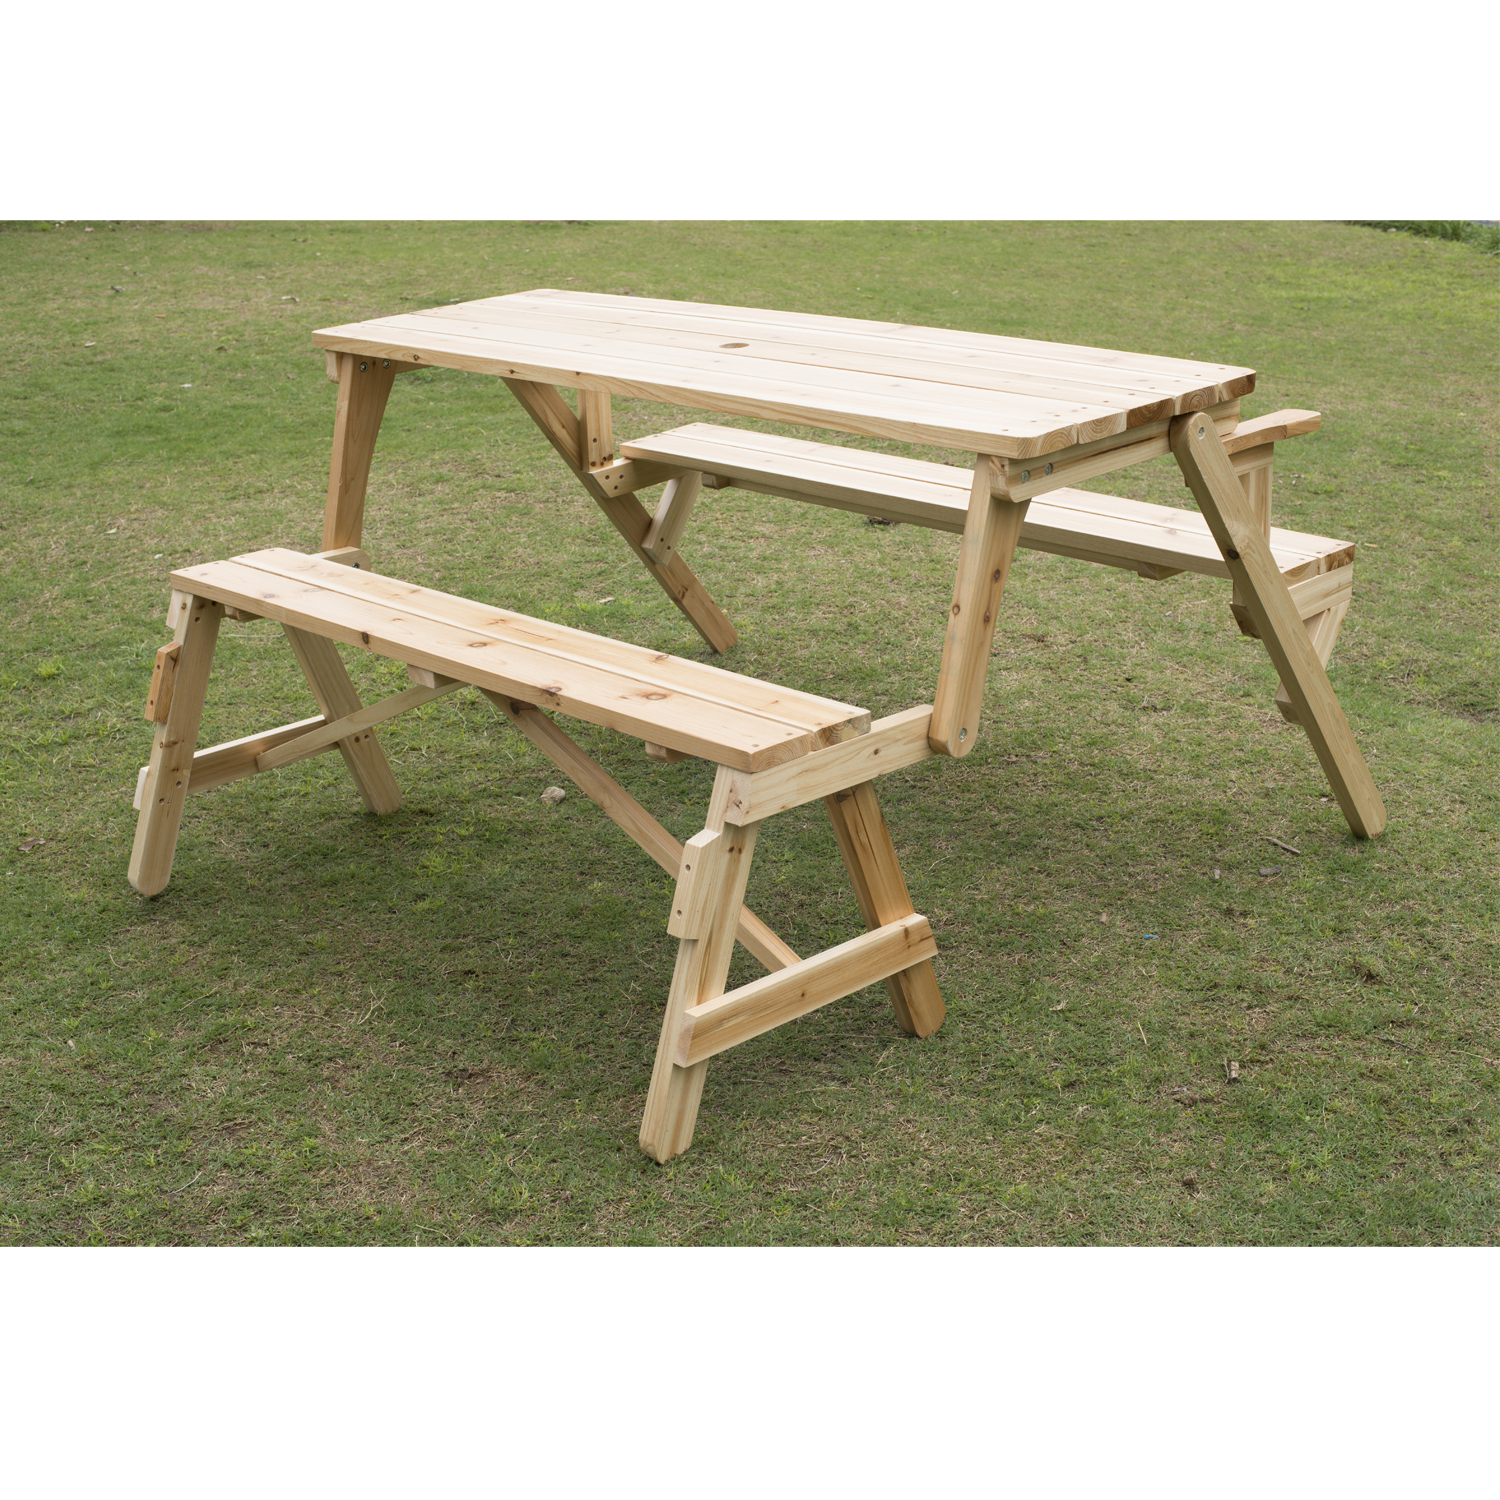 Image of CAD $159.99 Outsunny 2 in 1 Outdoor Picnic Table Garden Bench Fir Wood Durable Folding Portable Desk / Convertible & Foldable Canada 25093575600